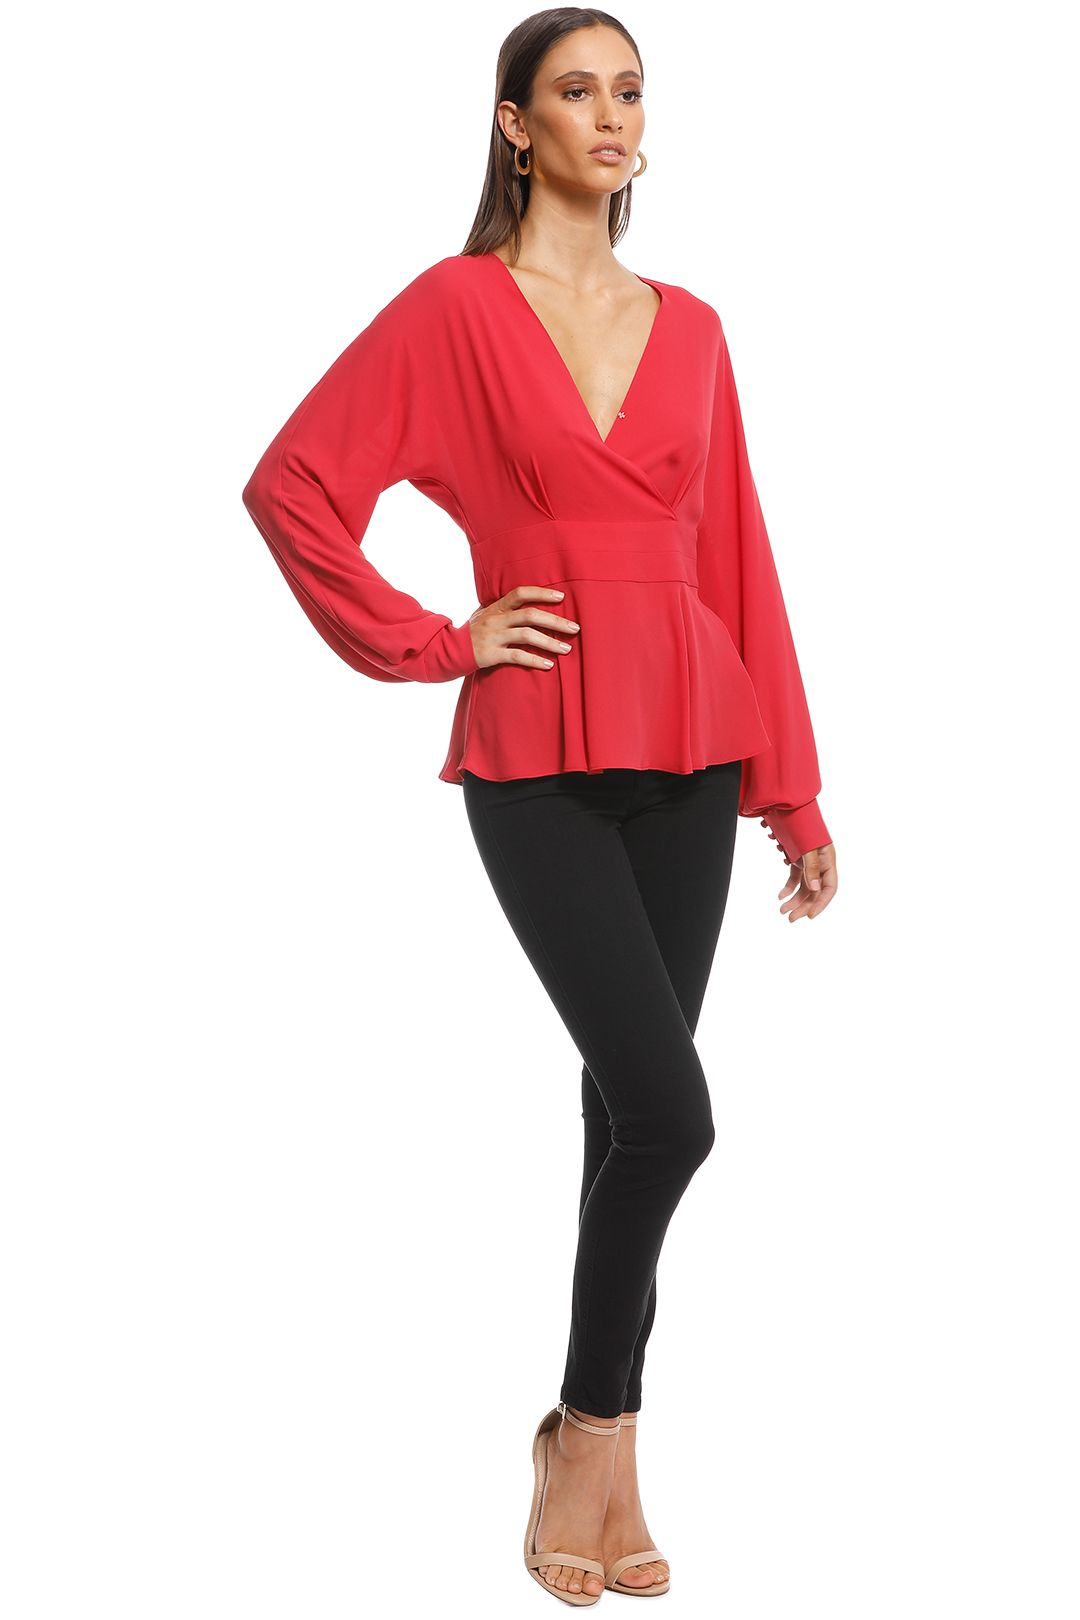 Cue - Georgette Exaggerated Sleeve Peplum Top - Pink - Side